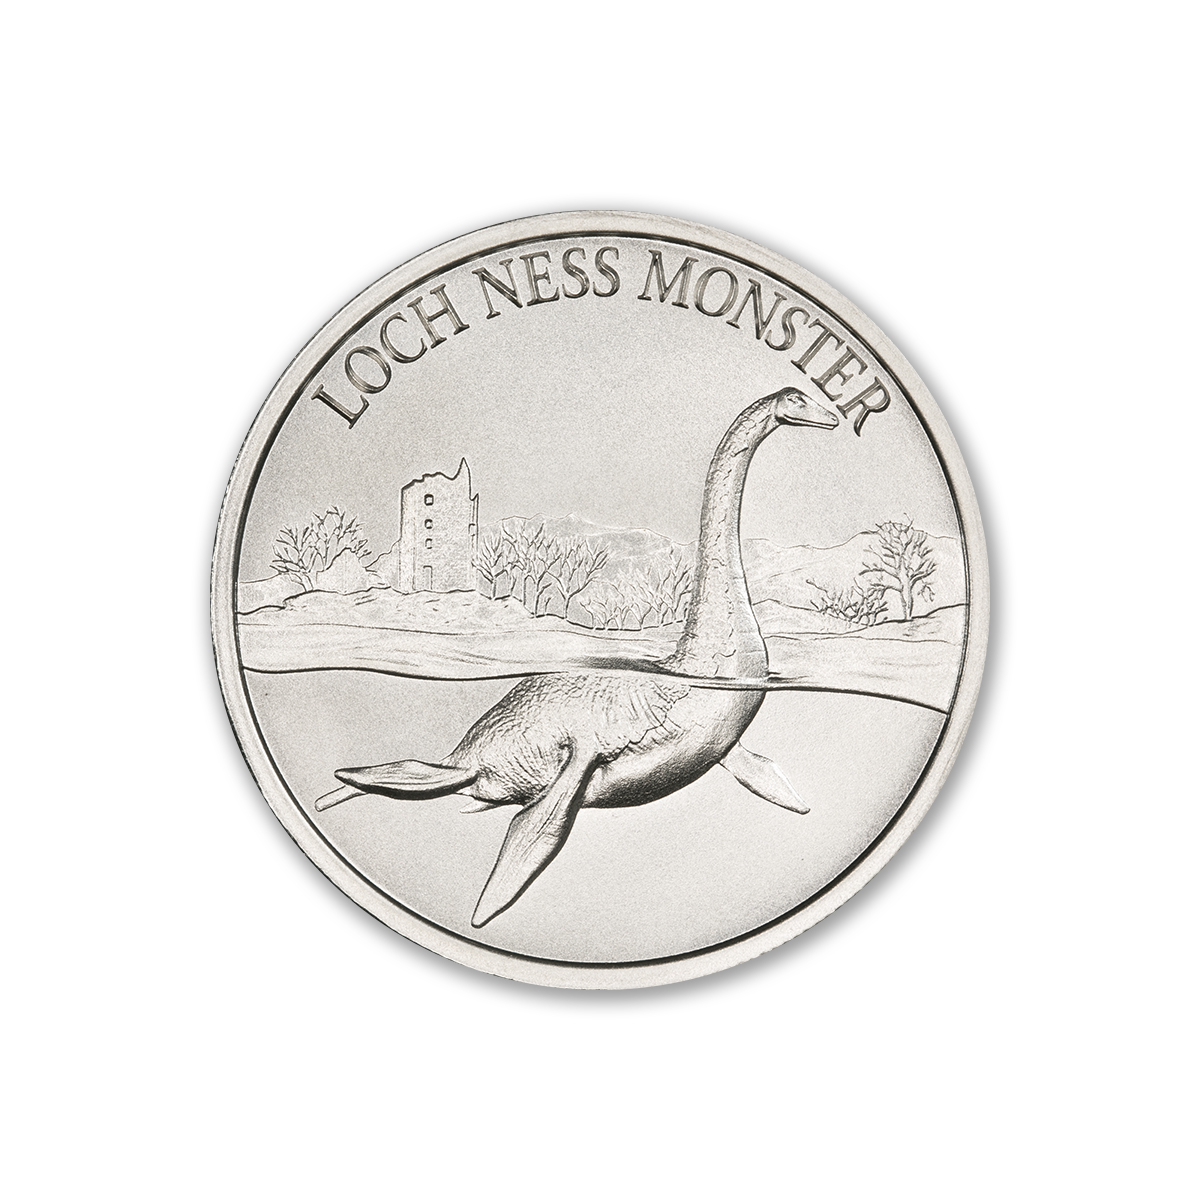 2020 – LOCH NESS MONSTER – 1 TROY OUNCE – 39MM